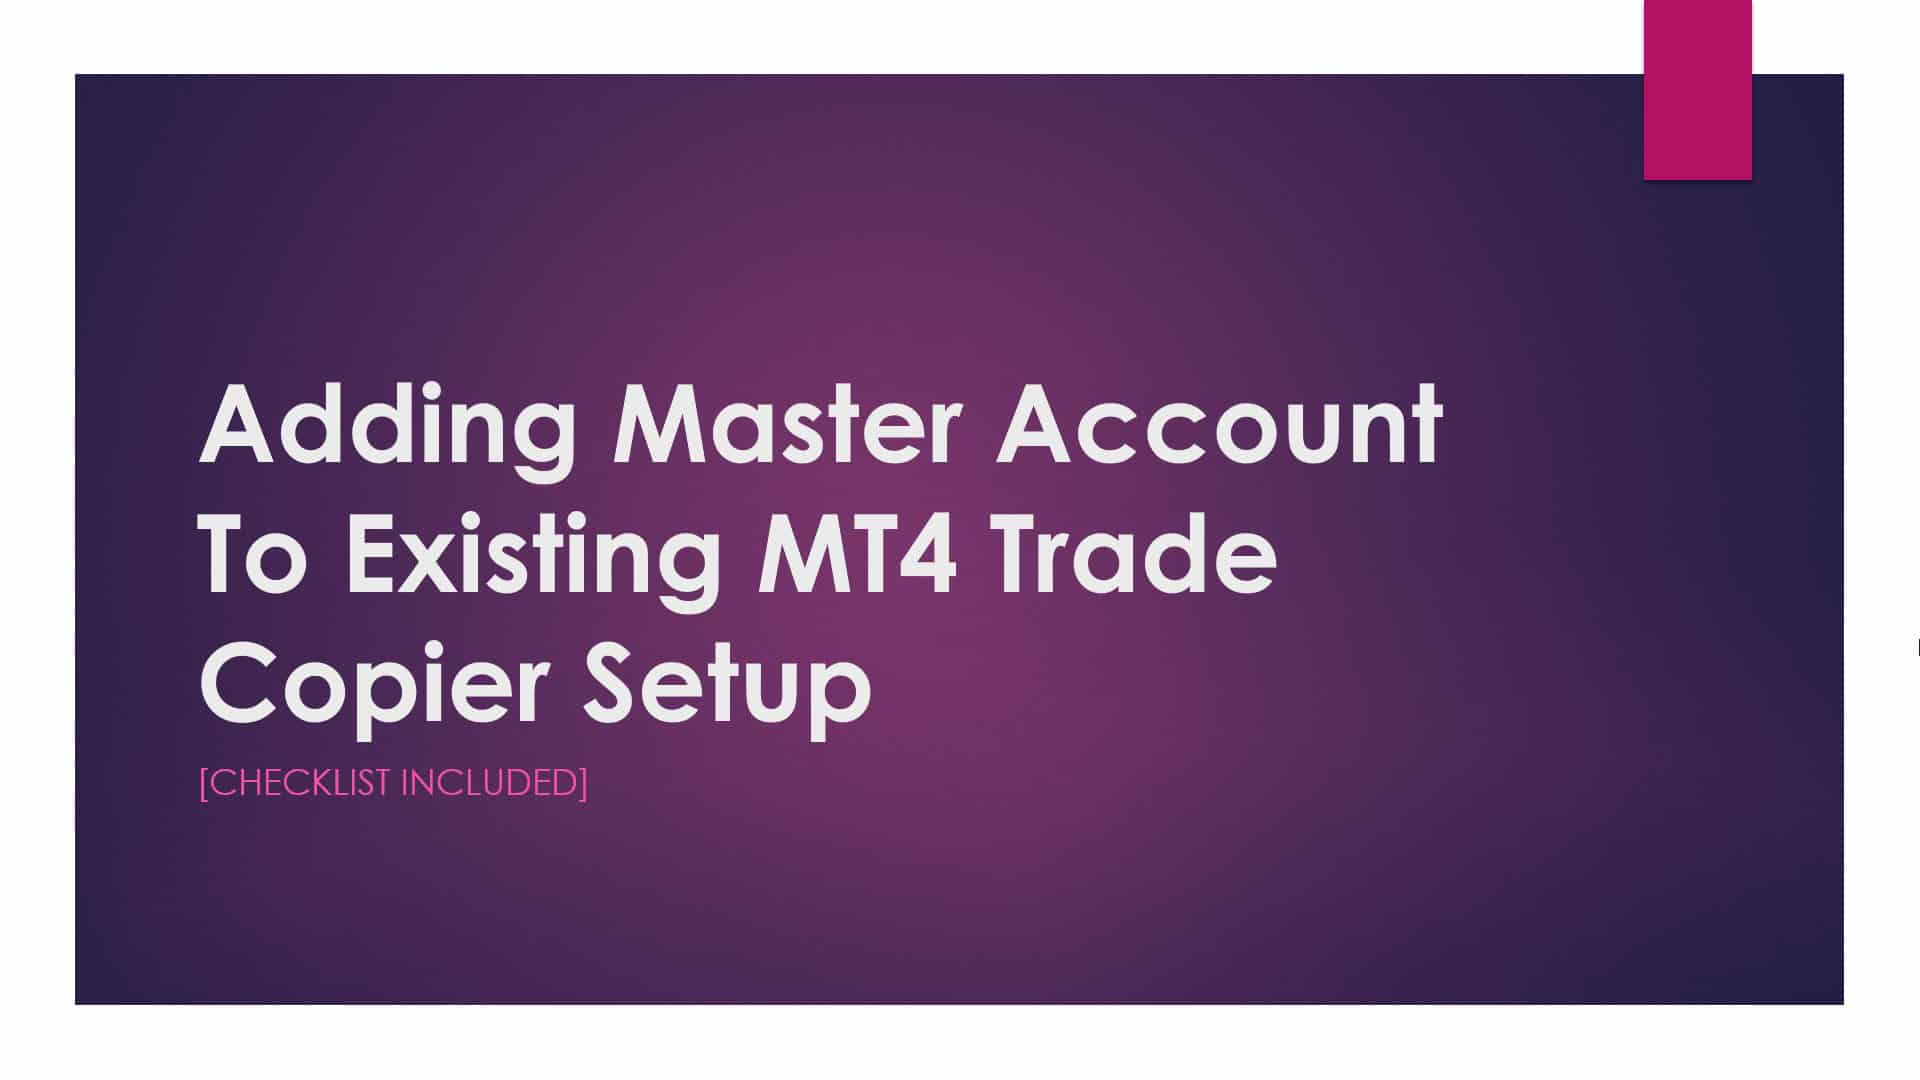 Adding Master Account To Existing MT4 Trade Copier Setup [Checklist included]